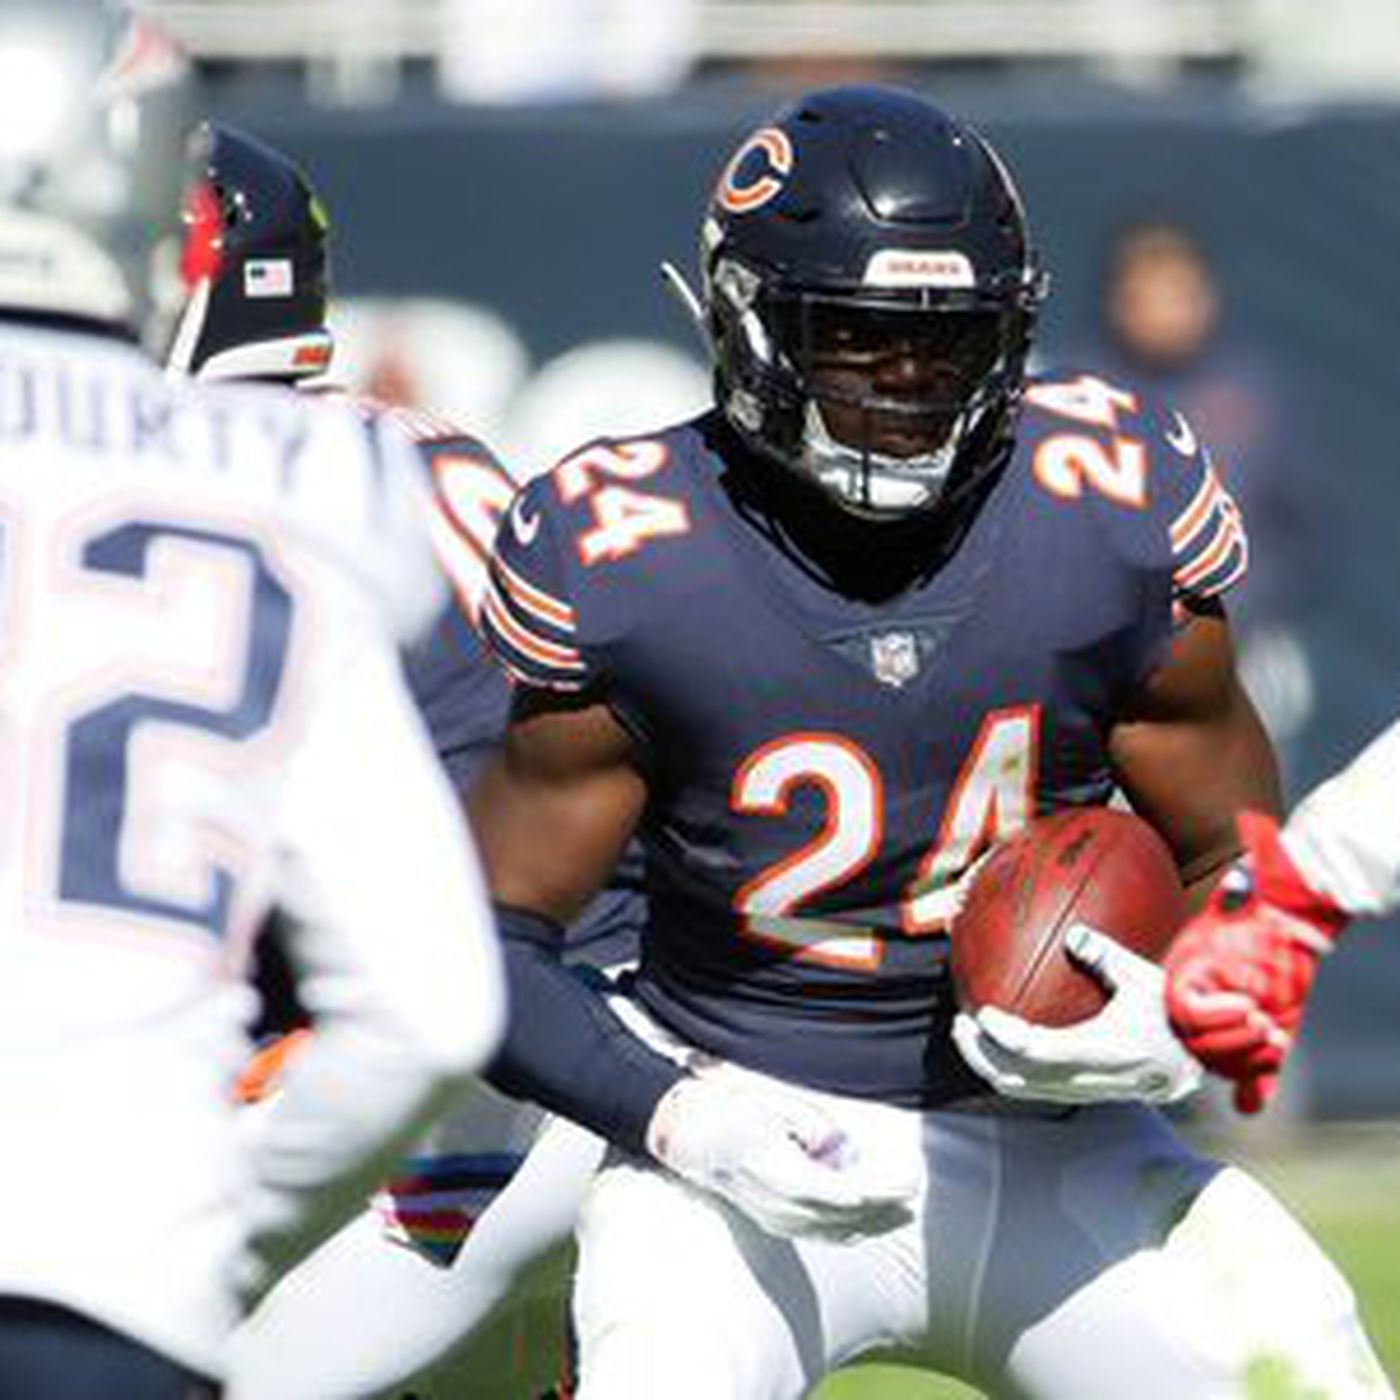 c6da10c6d8d As Bears search for run game, Jordan Howard says they 'just gotta give it  time'